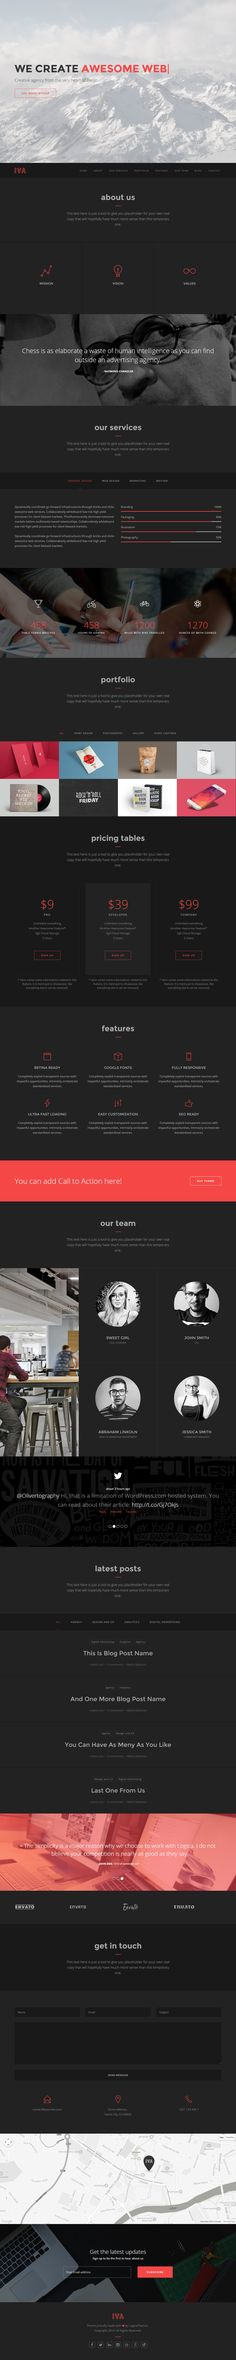 IVA is Premium full Responsive HTML5 Multipurpose Template. Parallax Scrolling. Retina Ready. Video Background. One Page. http://www.responsivemiracle.com/cms/iva-premium-responsive-onepage-parallax-html5-template/